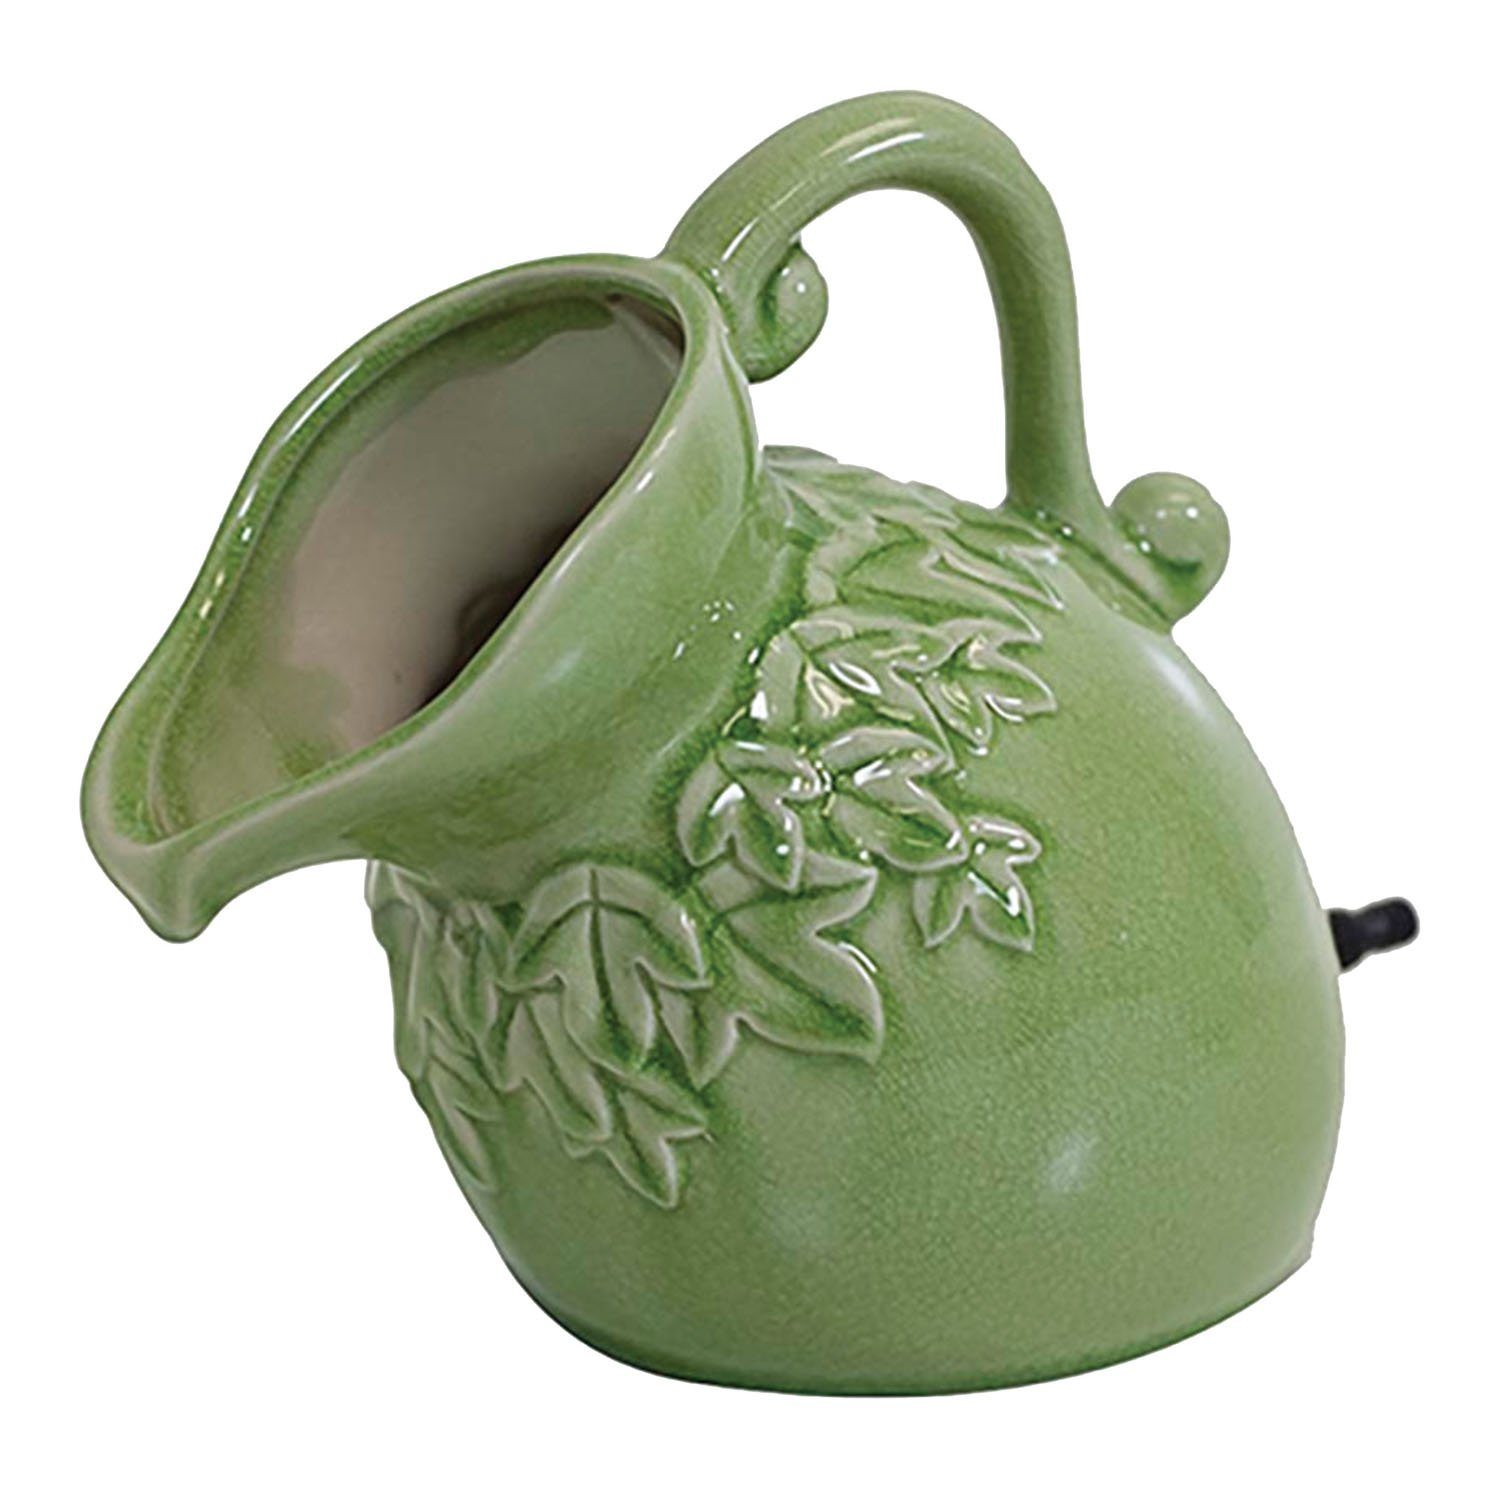 pond boss SPPS Ceramic Pouring Pitcher Spitter, Sage